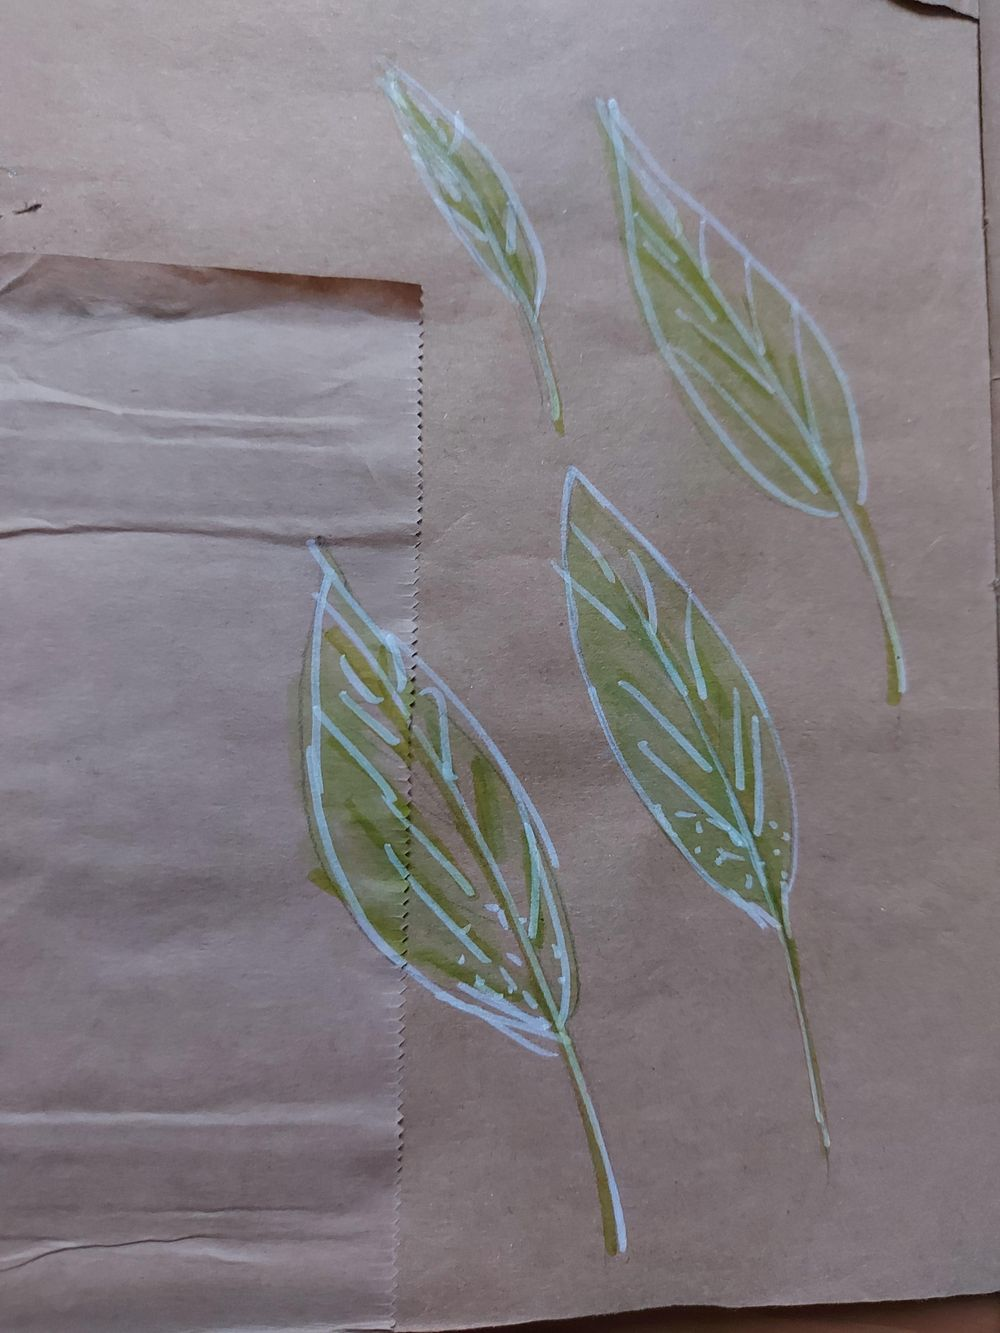 My upcycled paper bag - image 4 - student project